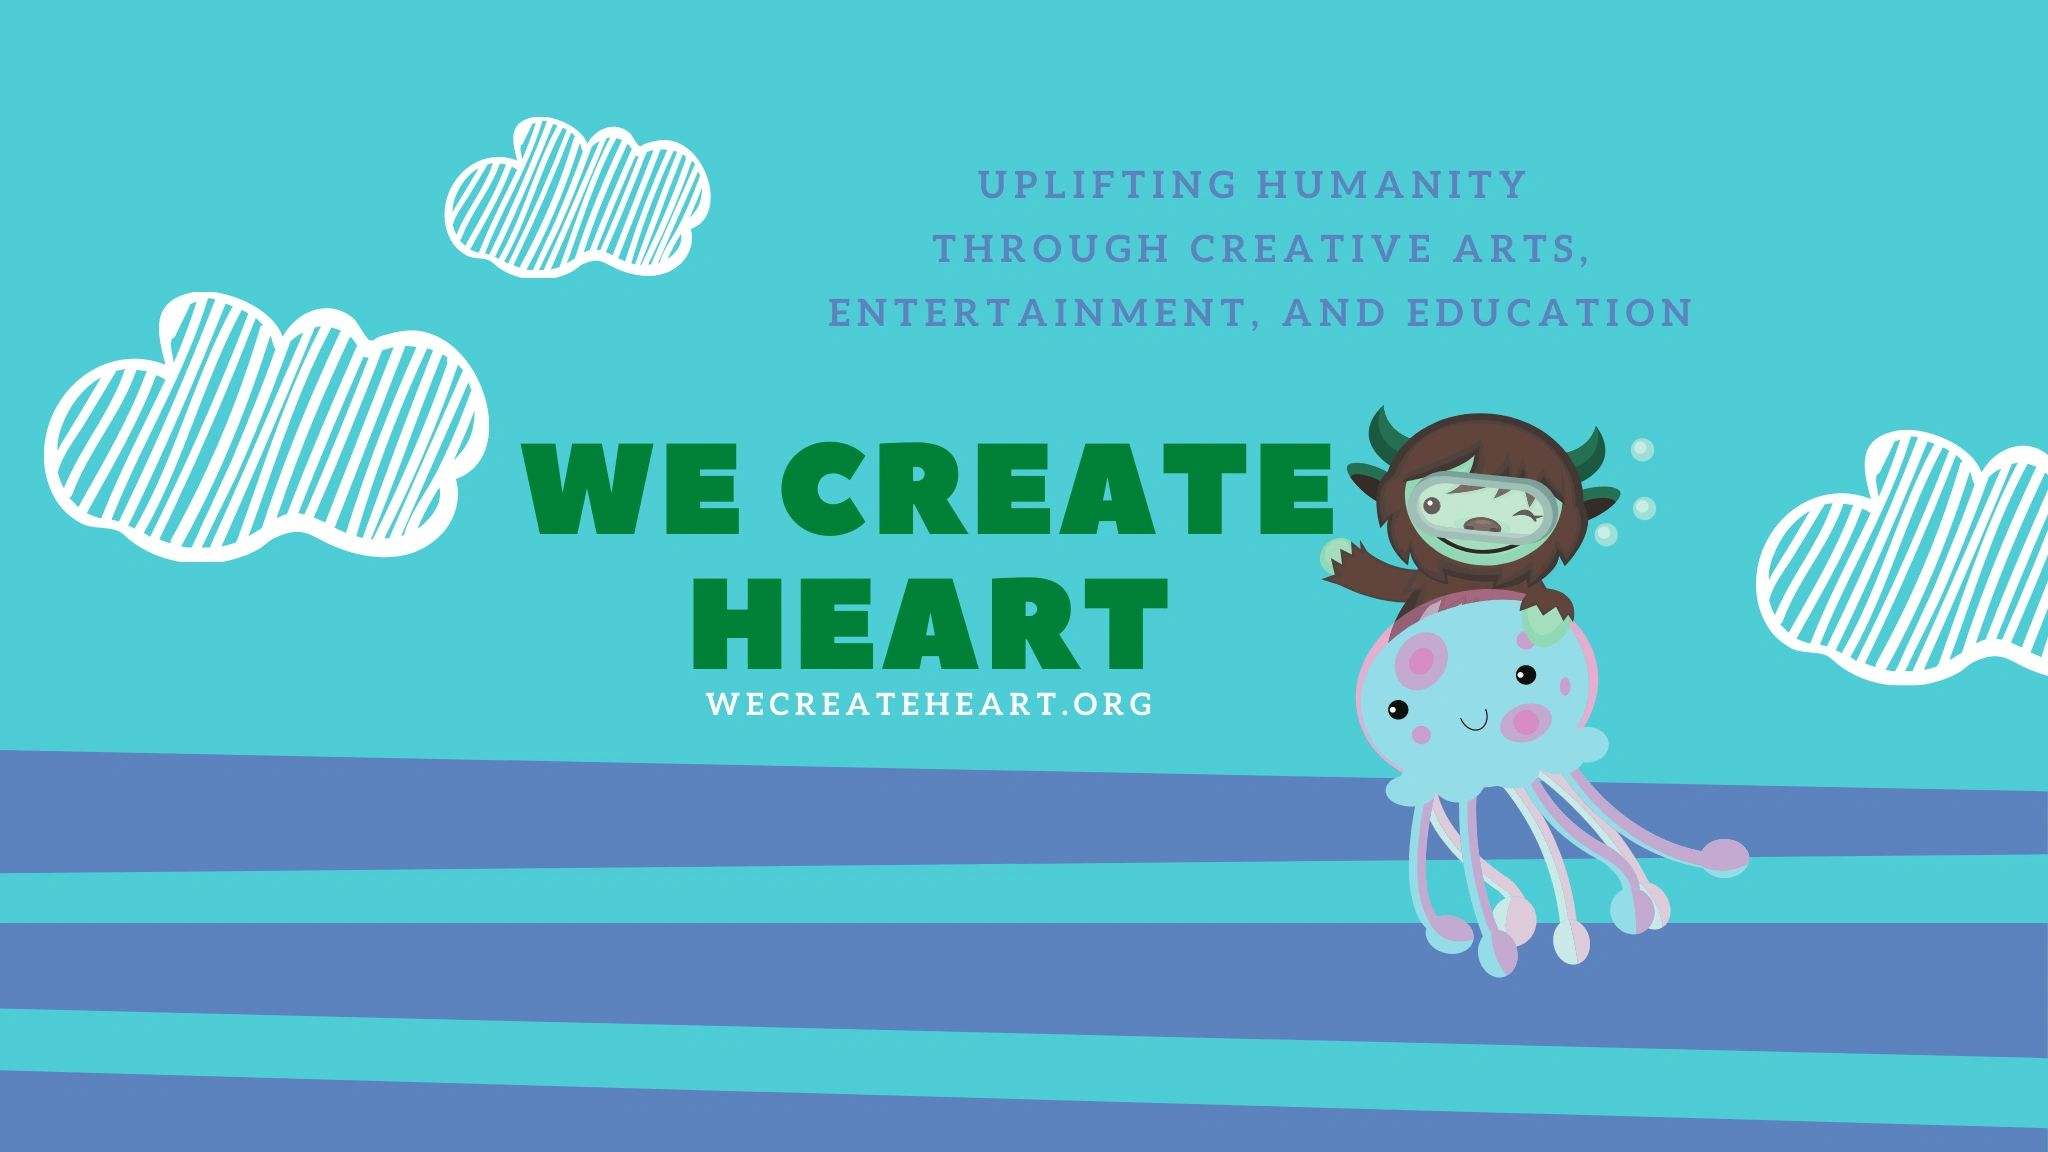 We donate a portion of our proceeds to We Create Heart and nonprofit organization  uplifting humanit